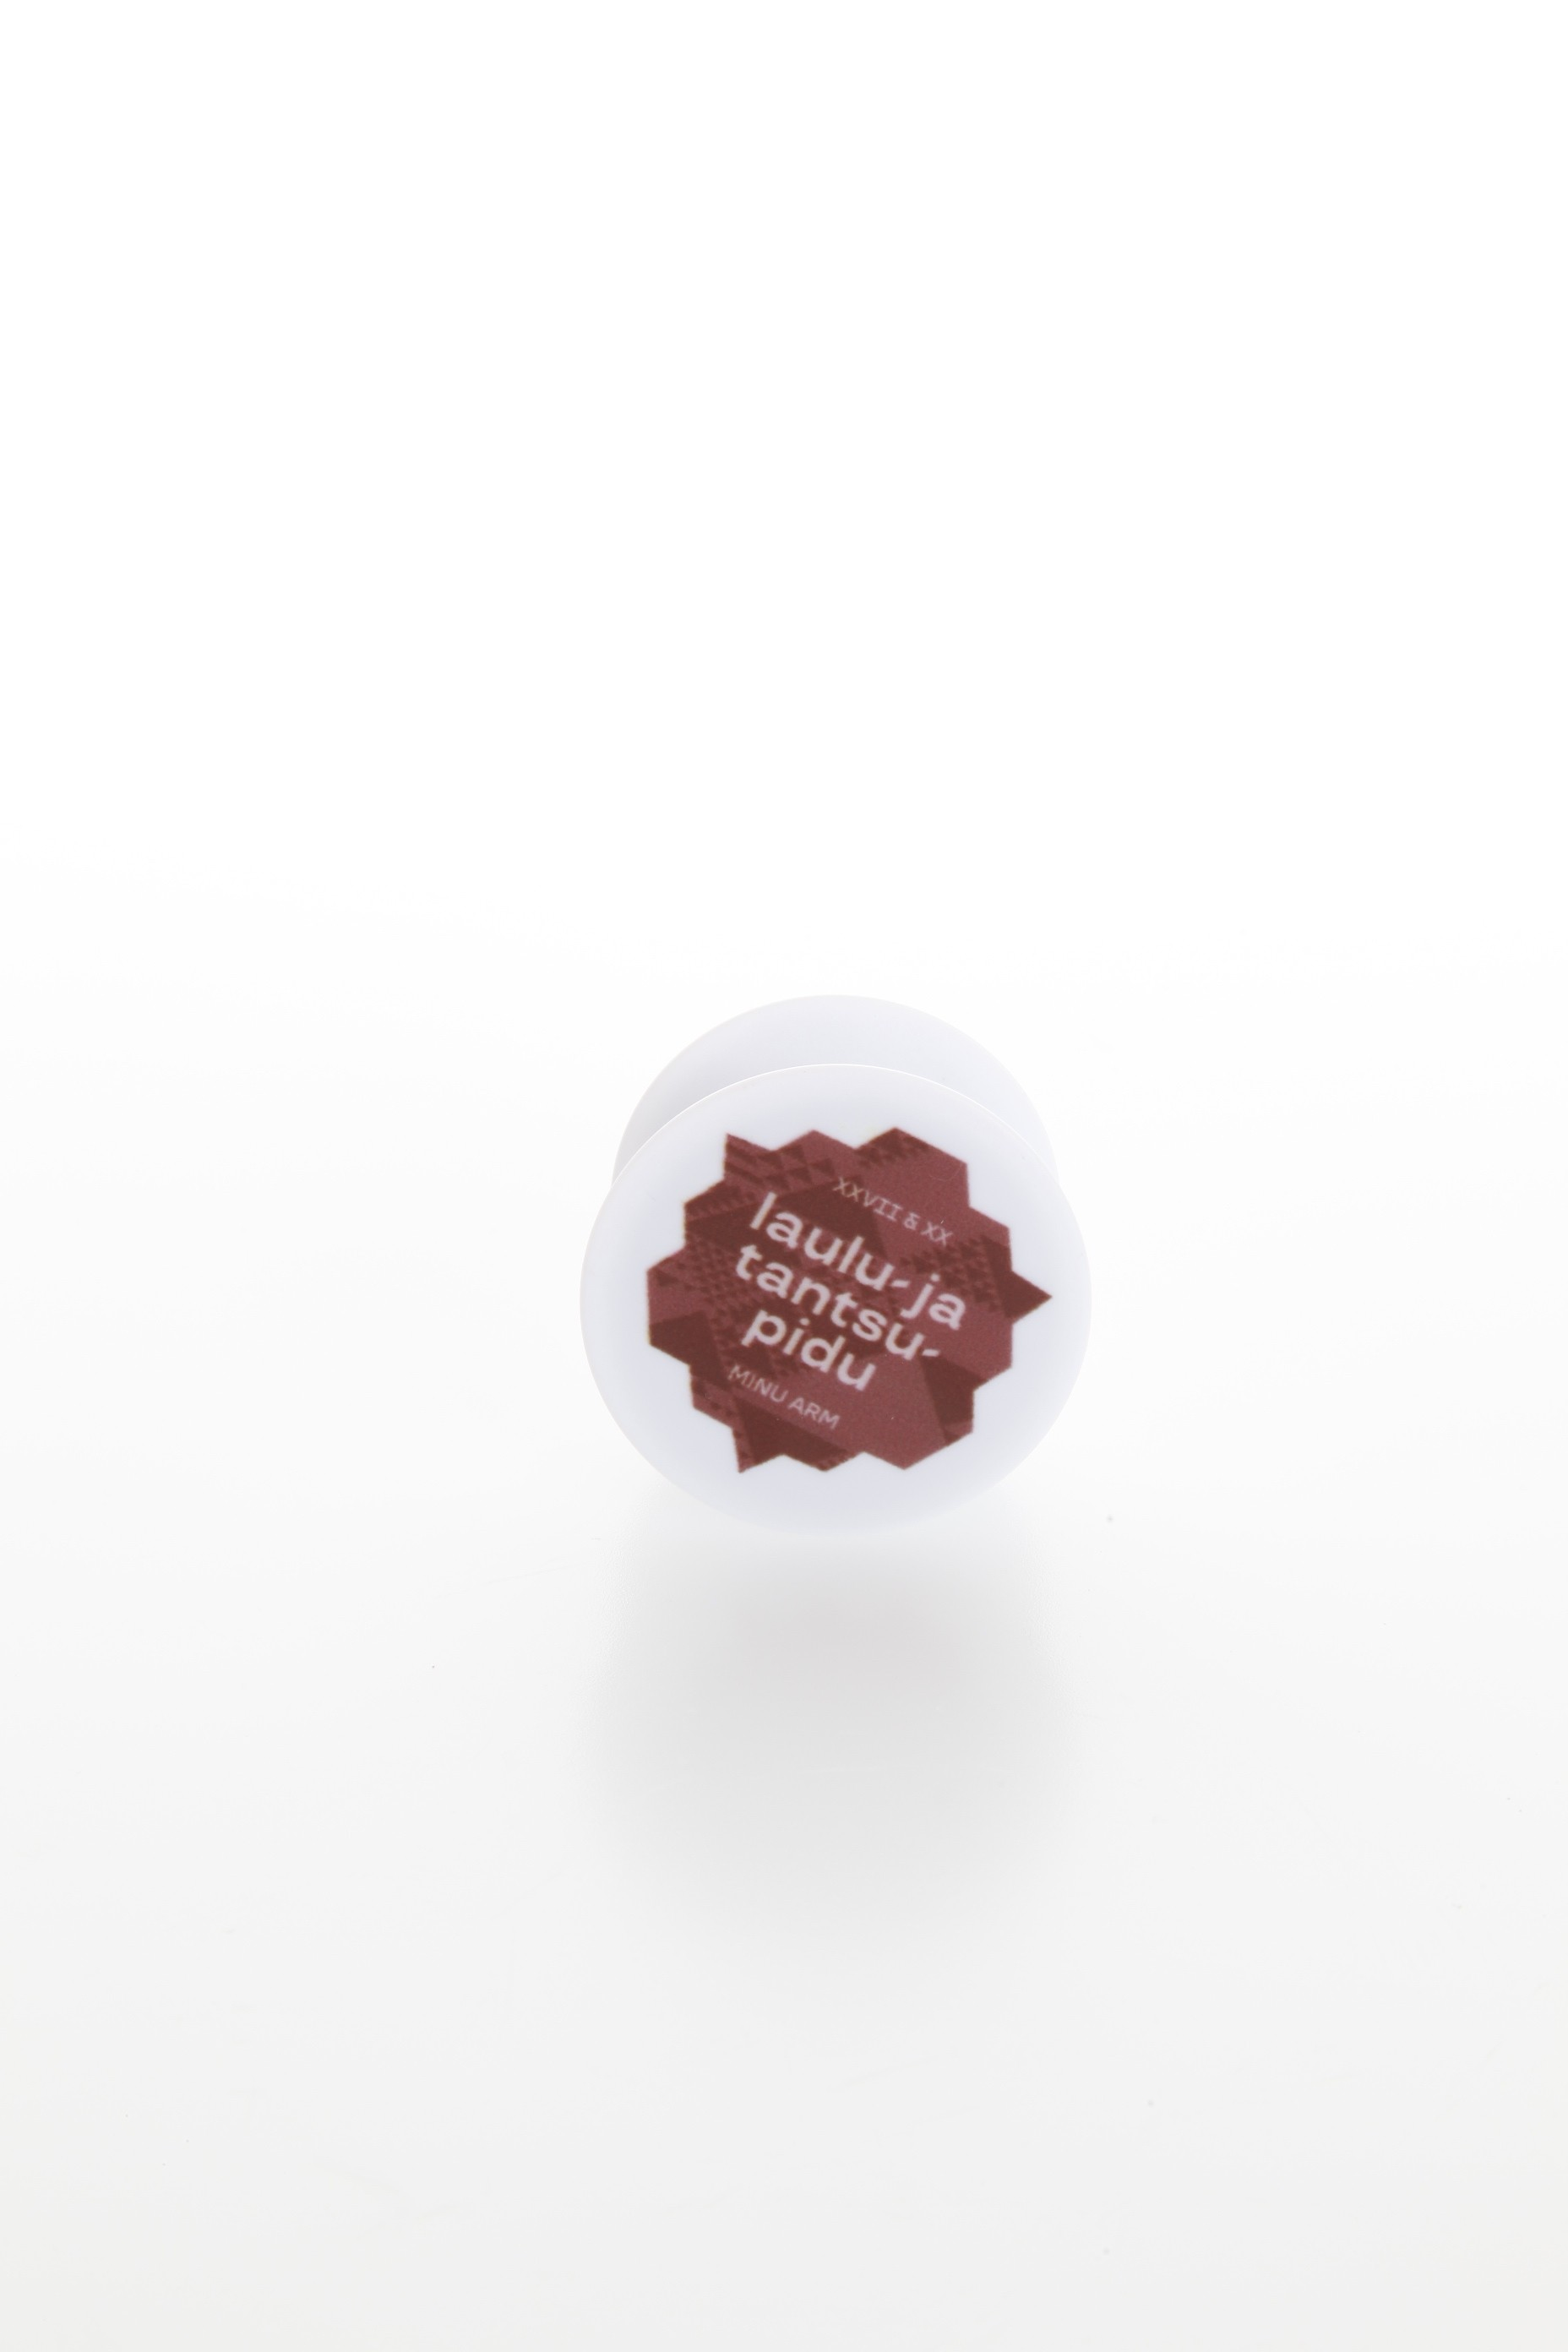 Brown PopSocket for a mobile phone